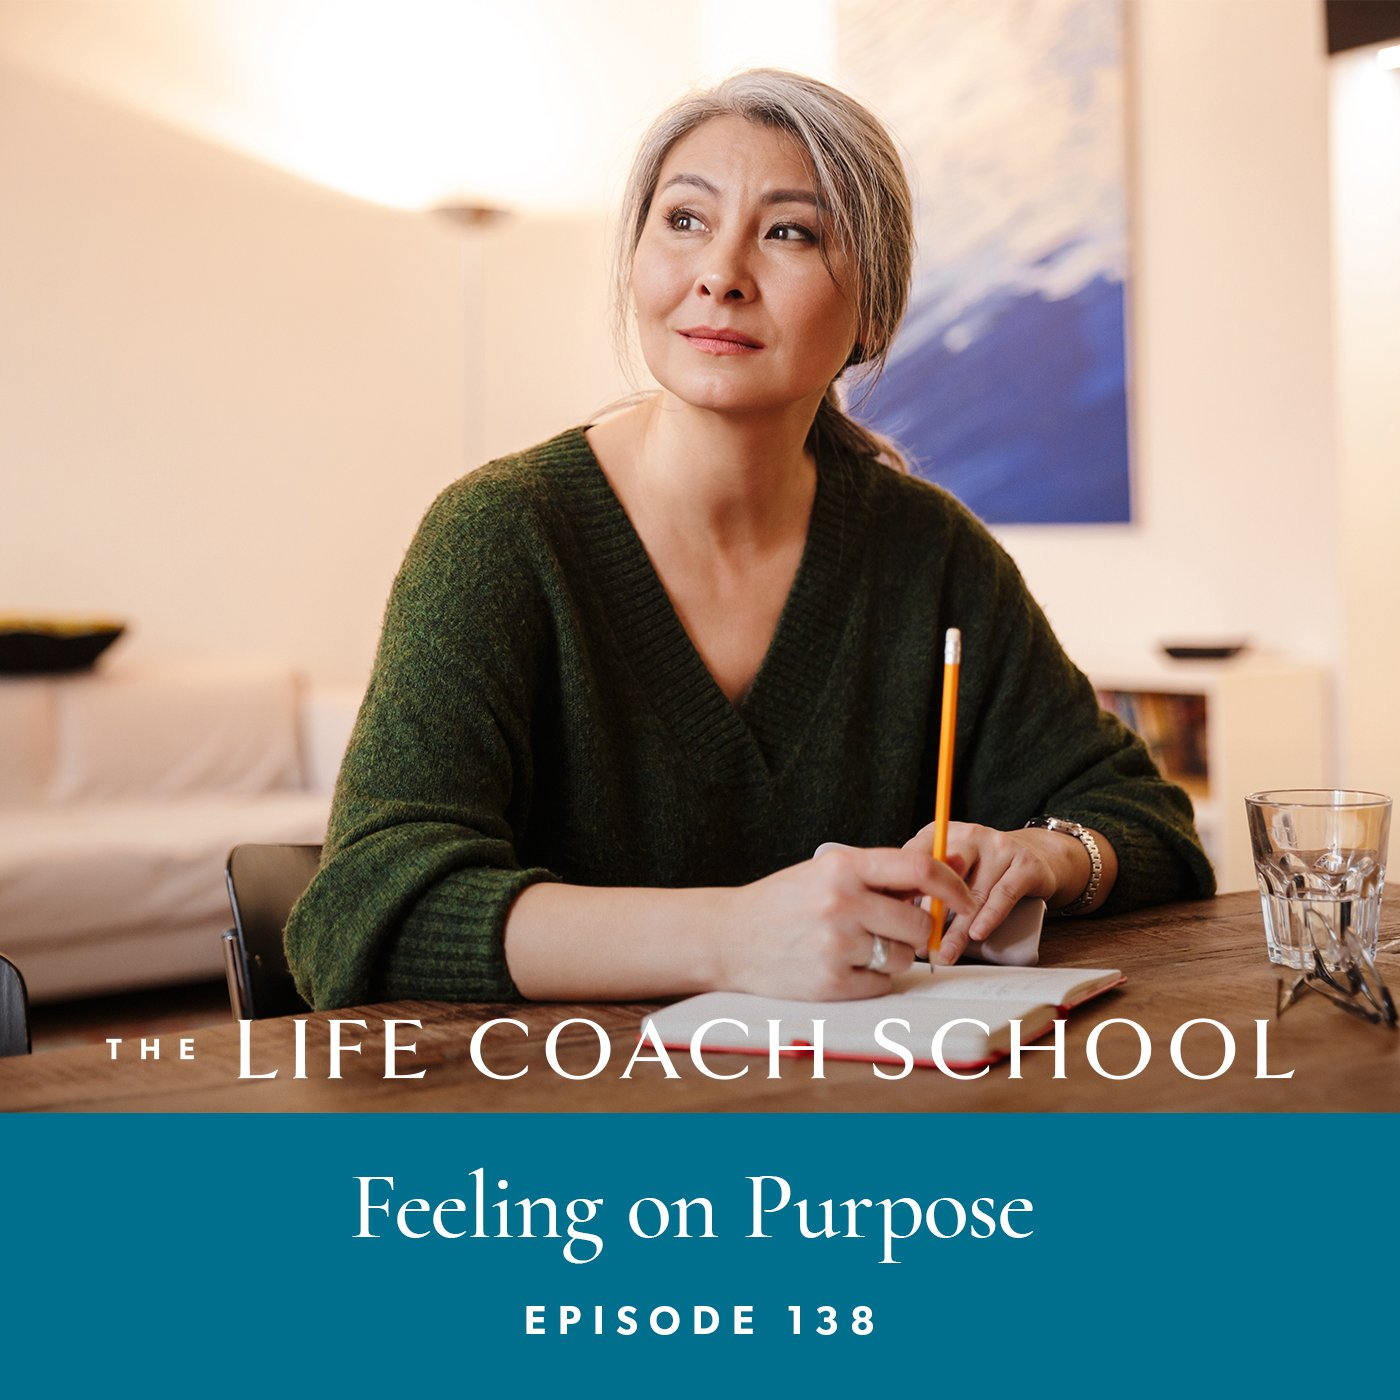 The Life Coach School Podcast with Brooke Castillo | Episode 138 | Feeling On Purpose